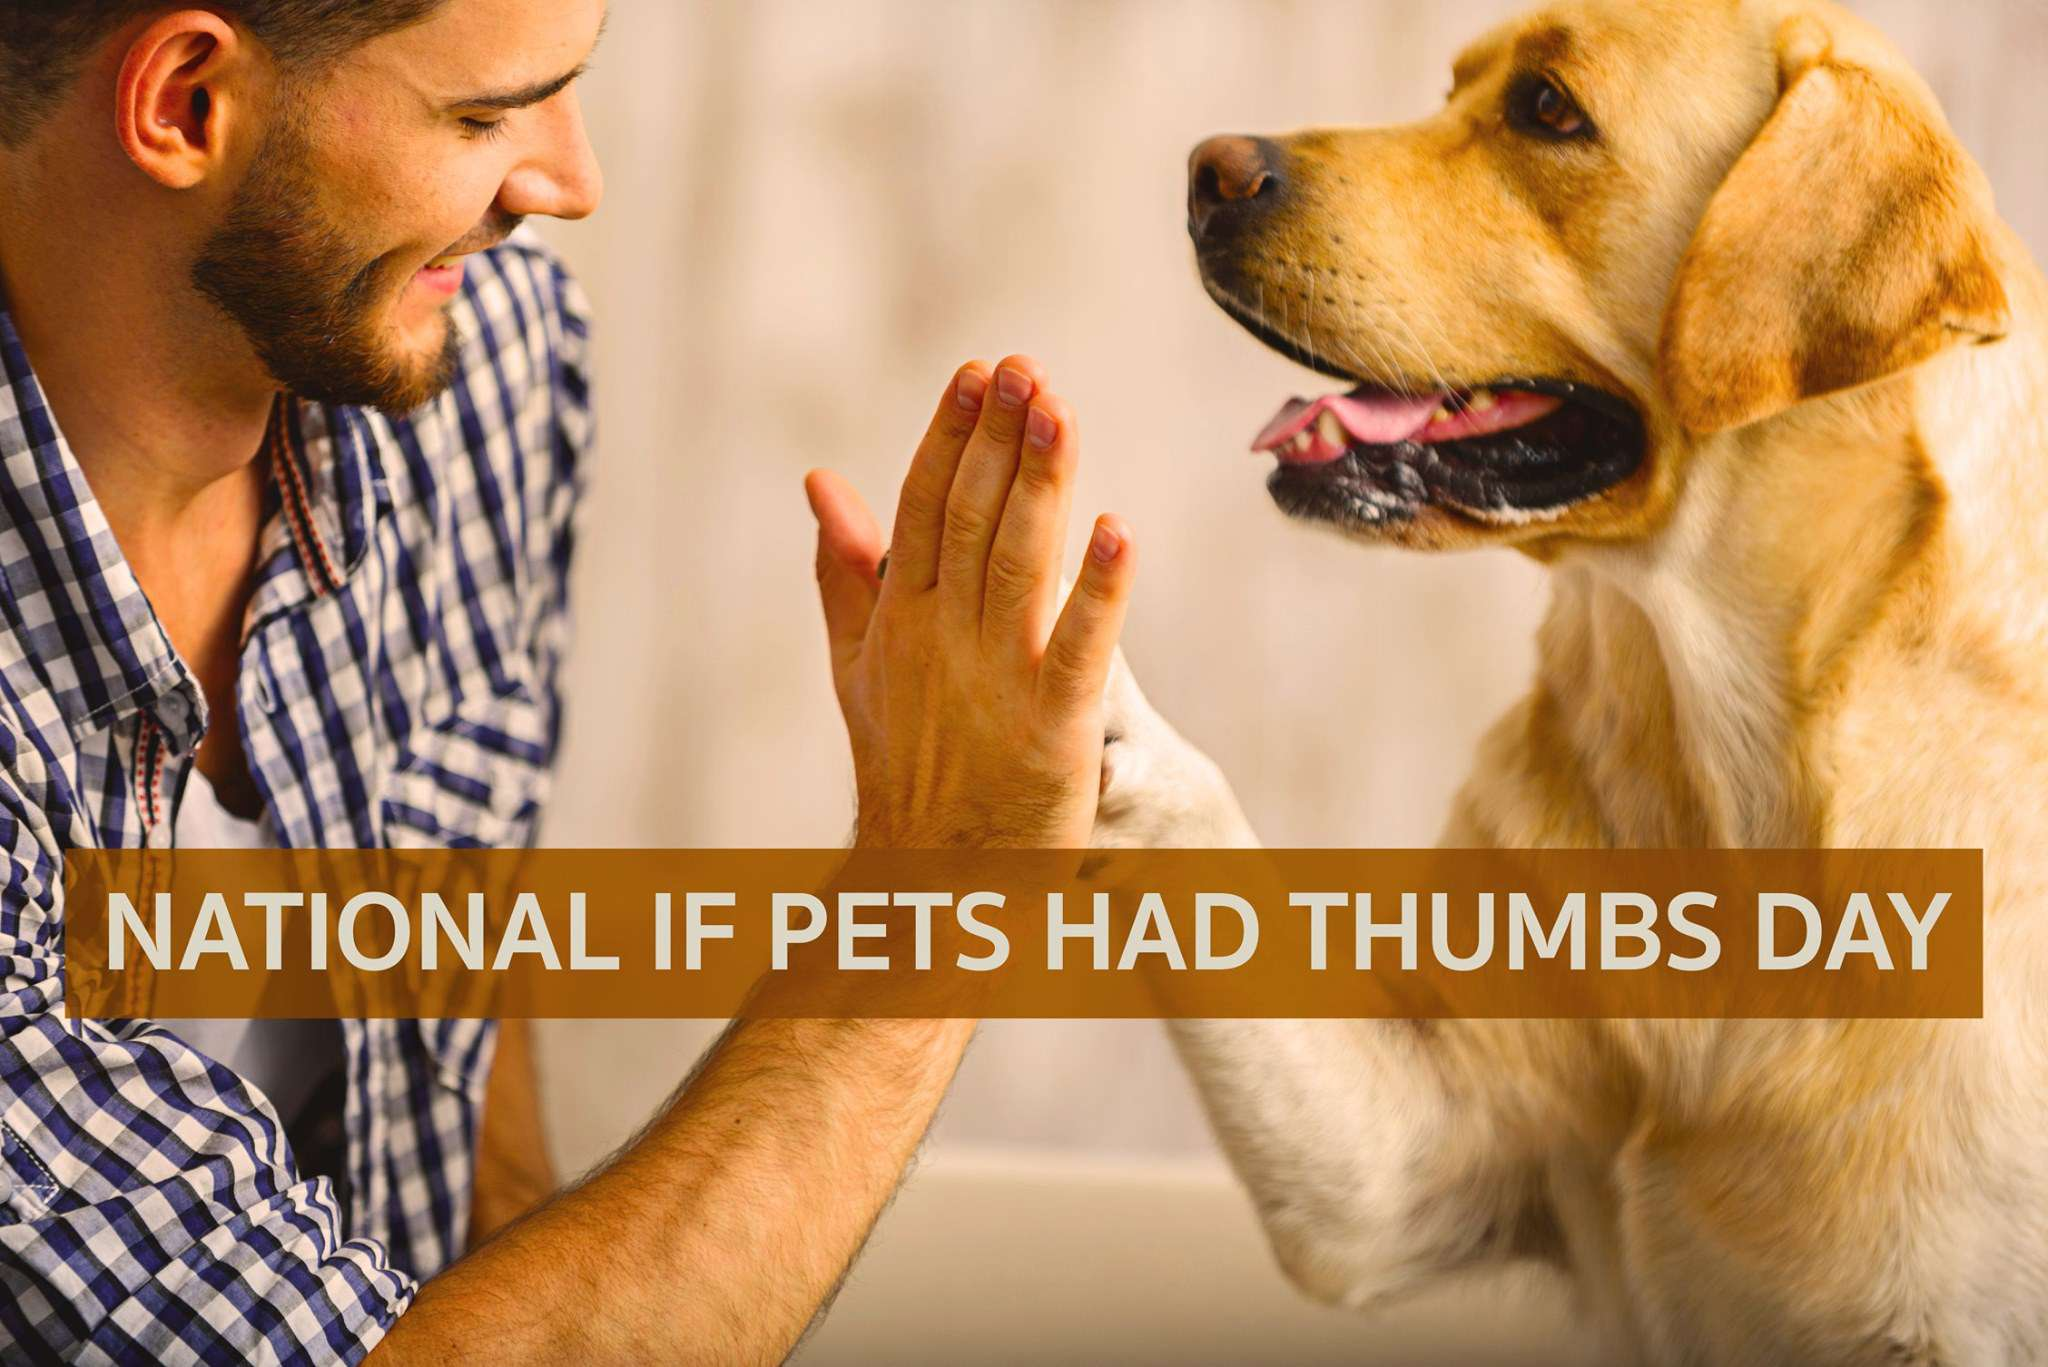 National If Pets Had Thumbs Day Wishes Beautiful Image